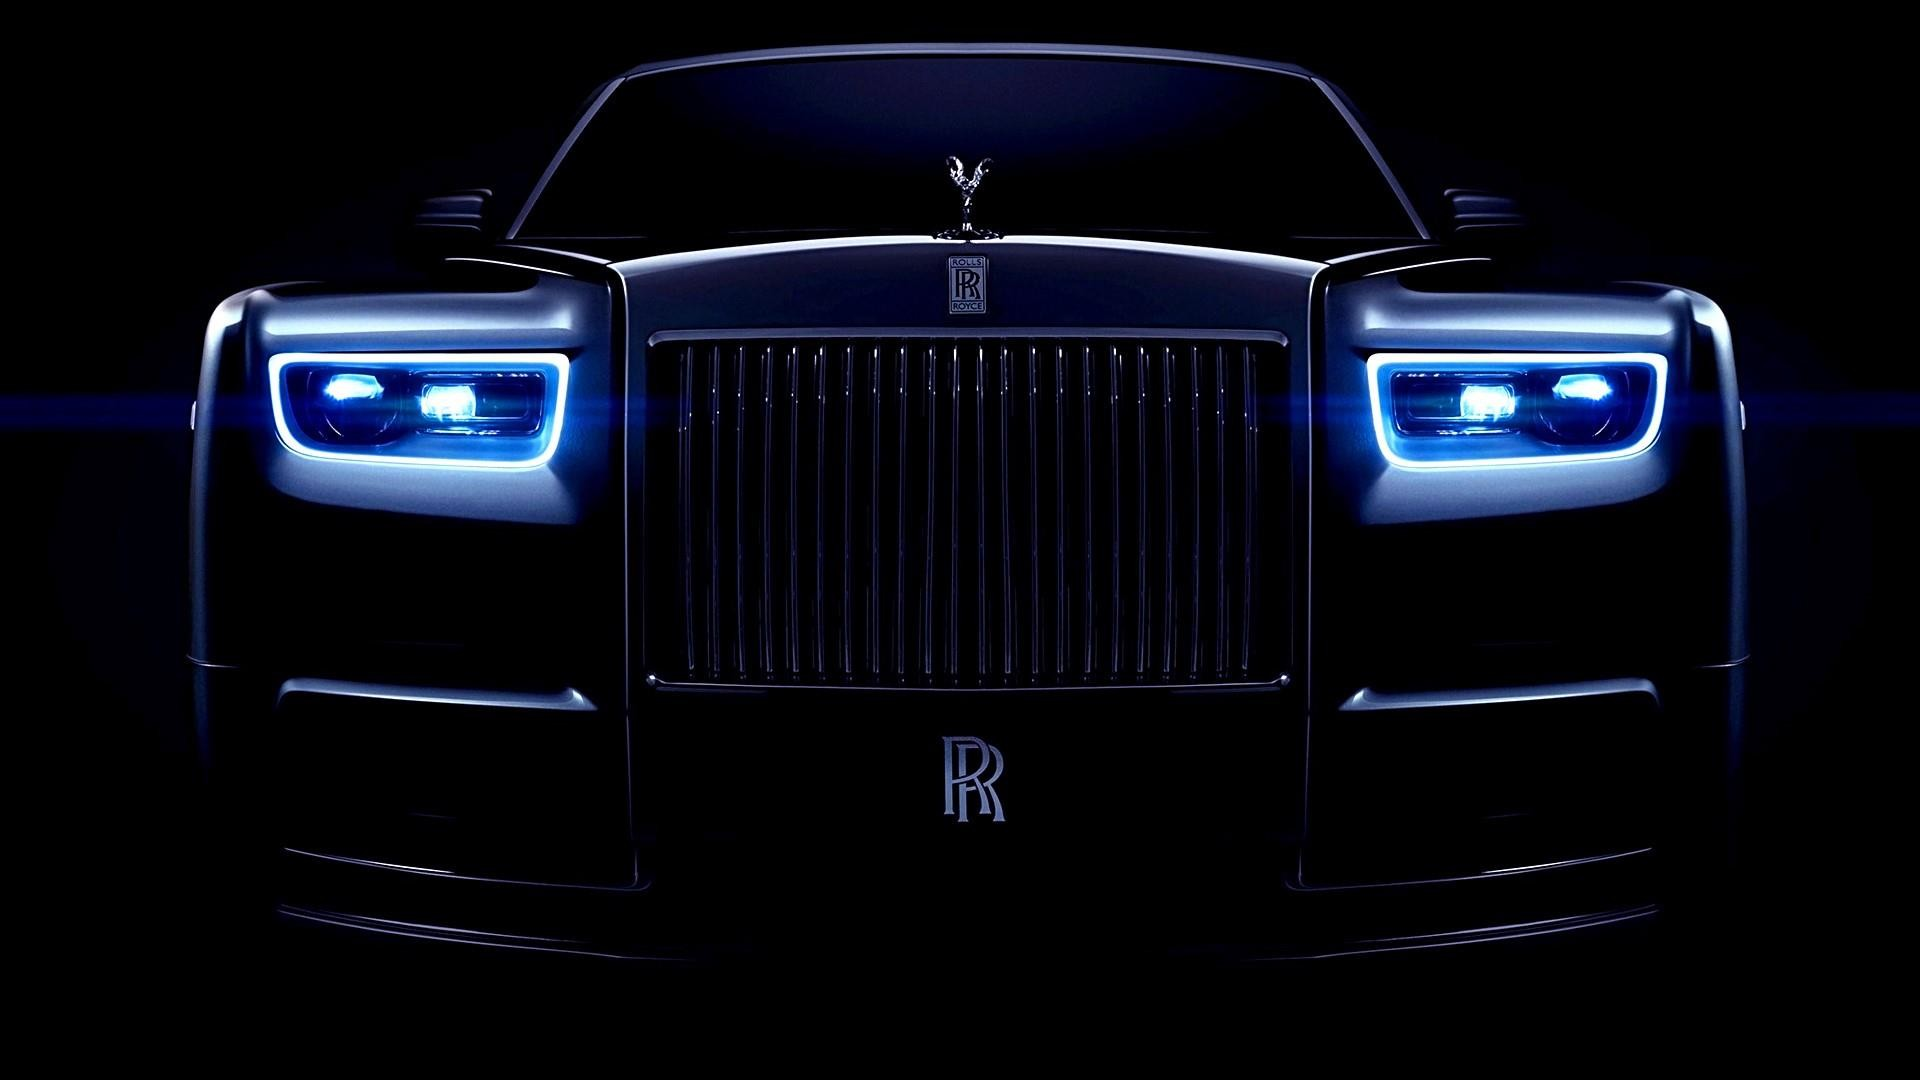 1920x1080 1024x768 2005 Rolls-Royce Phantom with Extended Wheelbase - Grille -  1024x768 .